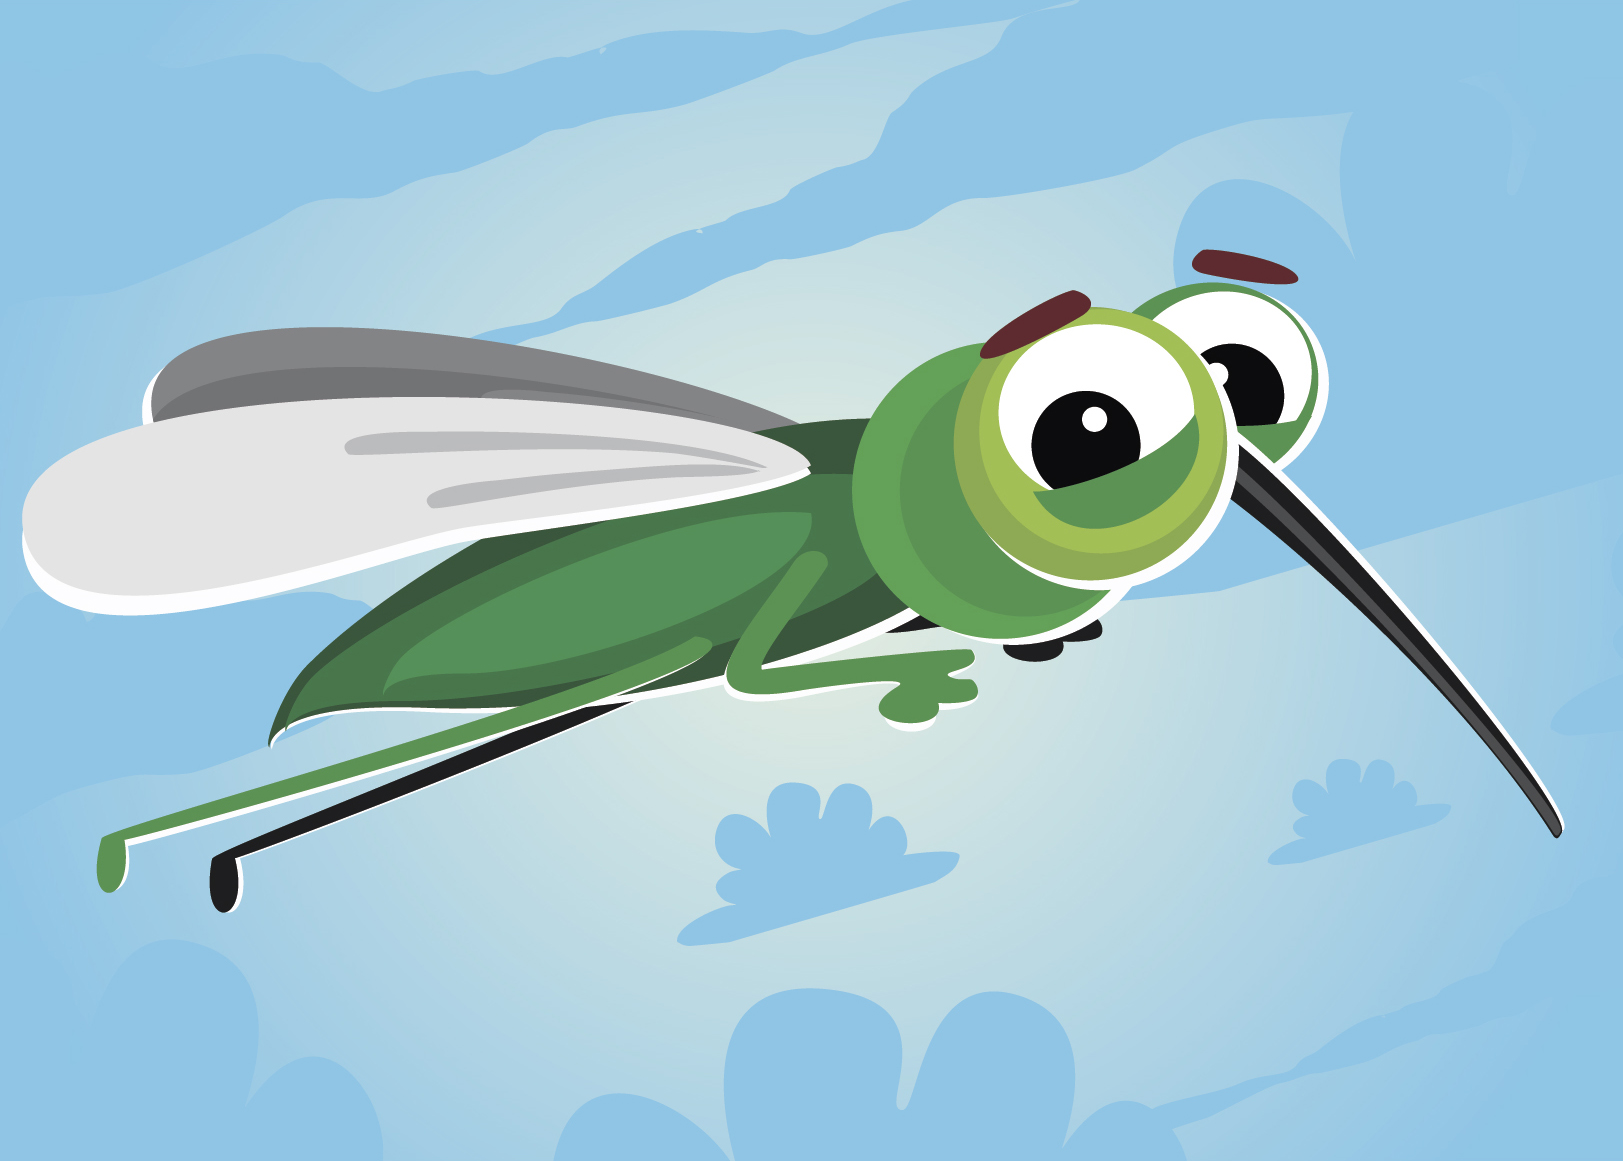 cartoon_mosquito_flying_insect.jpg